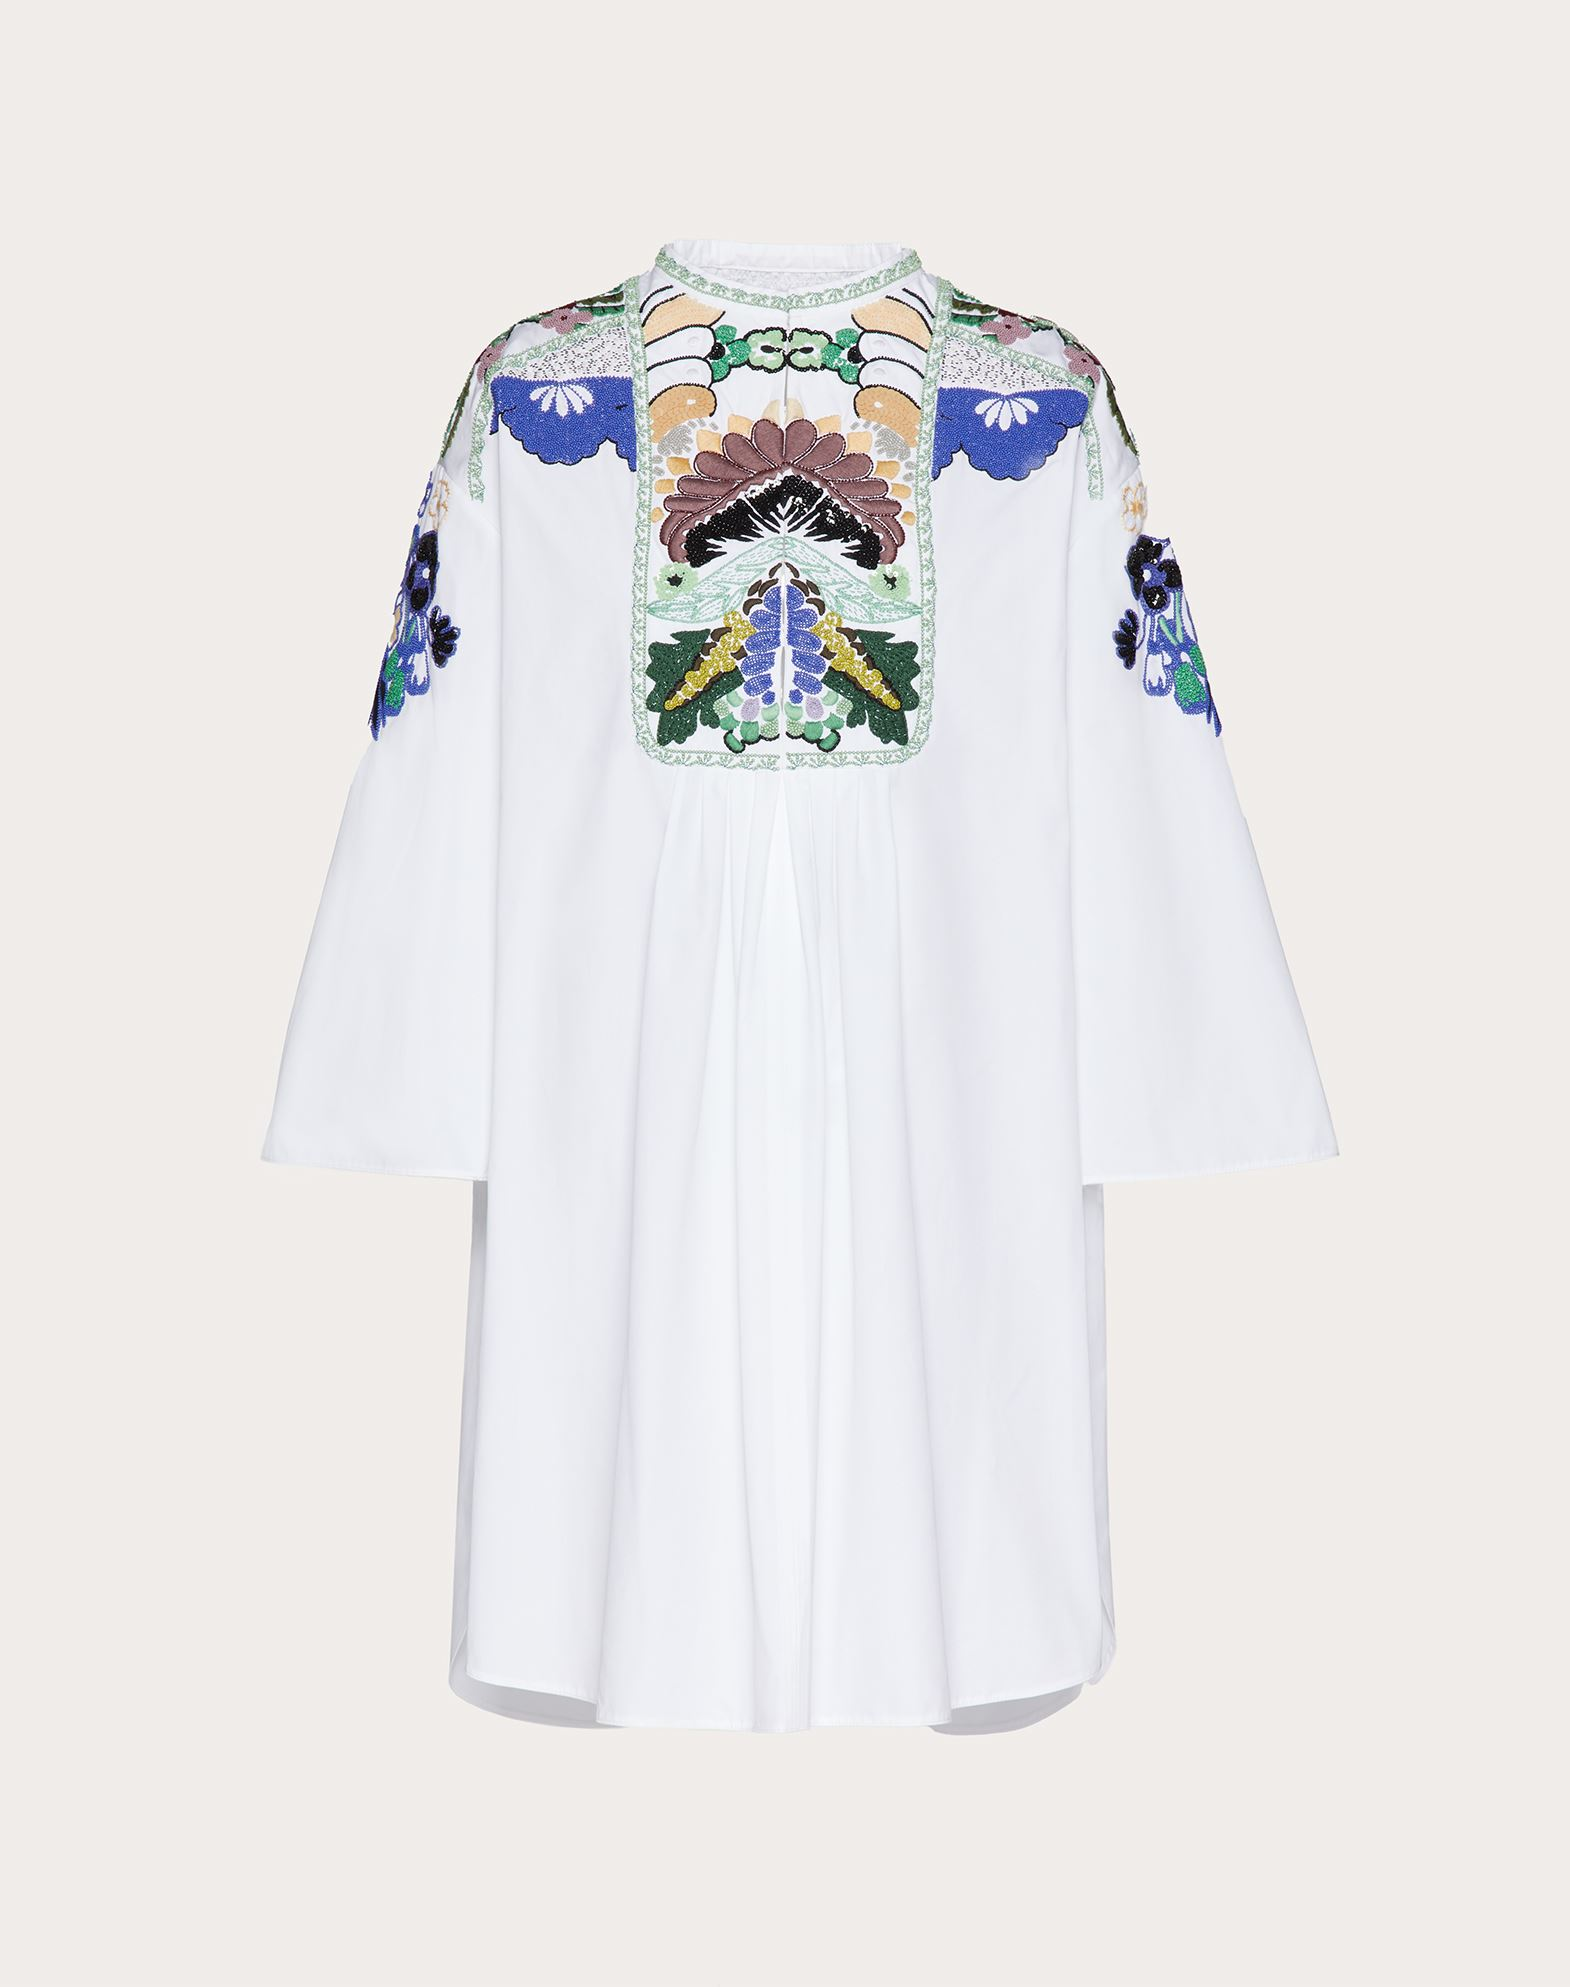 Gorgeous and versatile, Sleeveless and with a length up to the knee Mar\u00eda Luisa Dress Embroidered mexican dress made by Mayan artisans